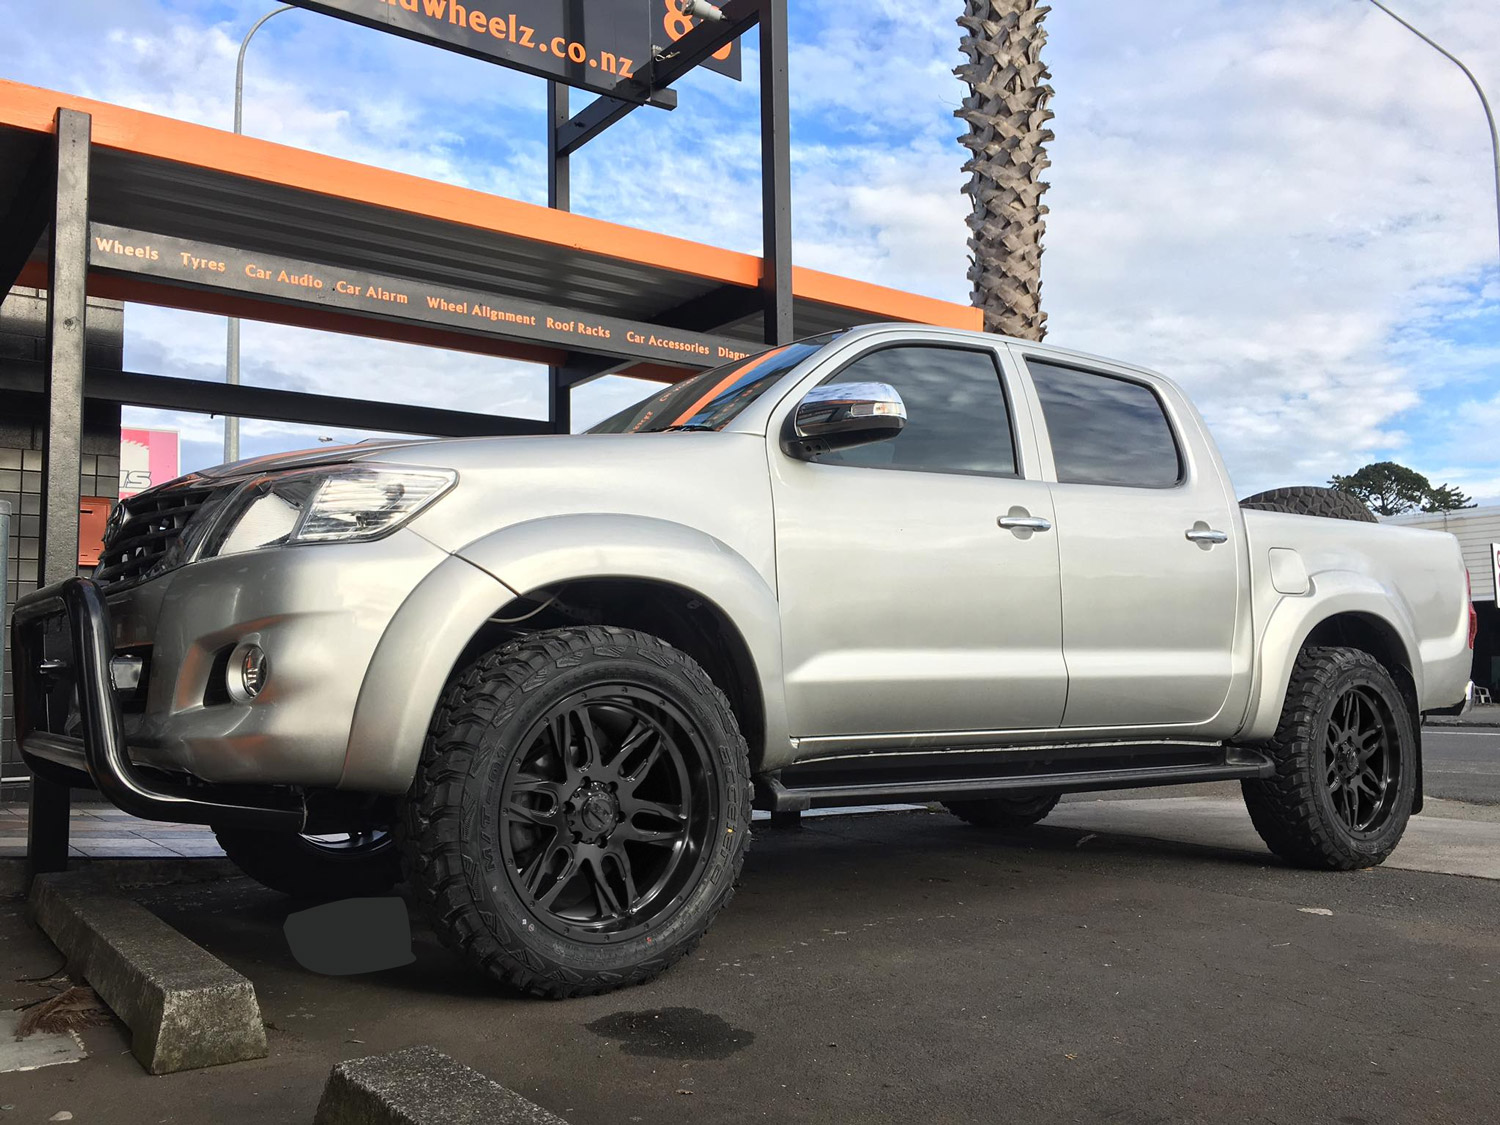 BGW Lethal on Toyota Hilux